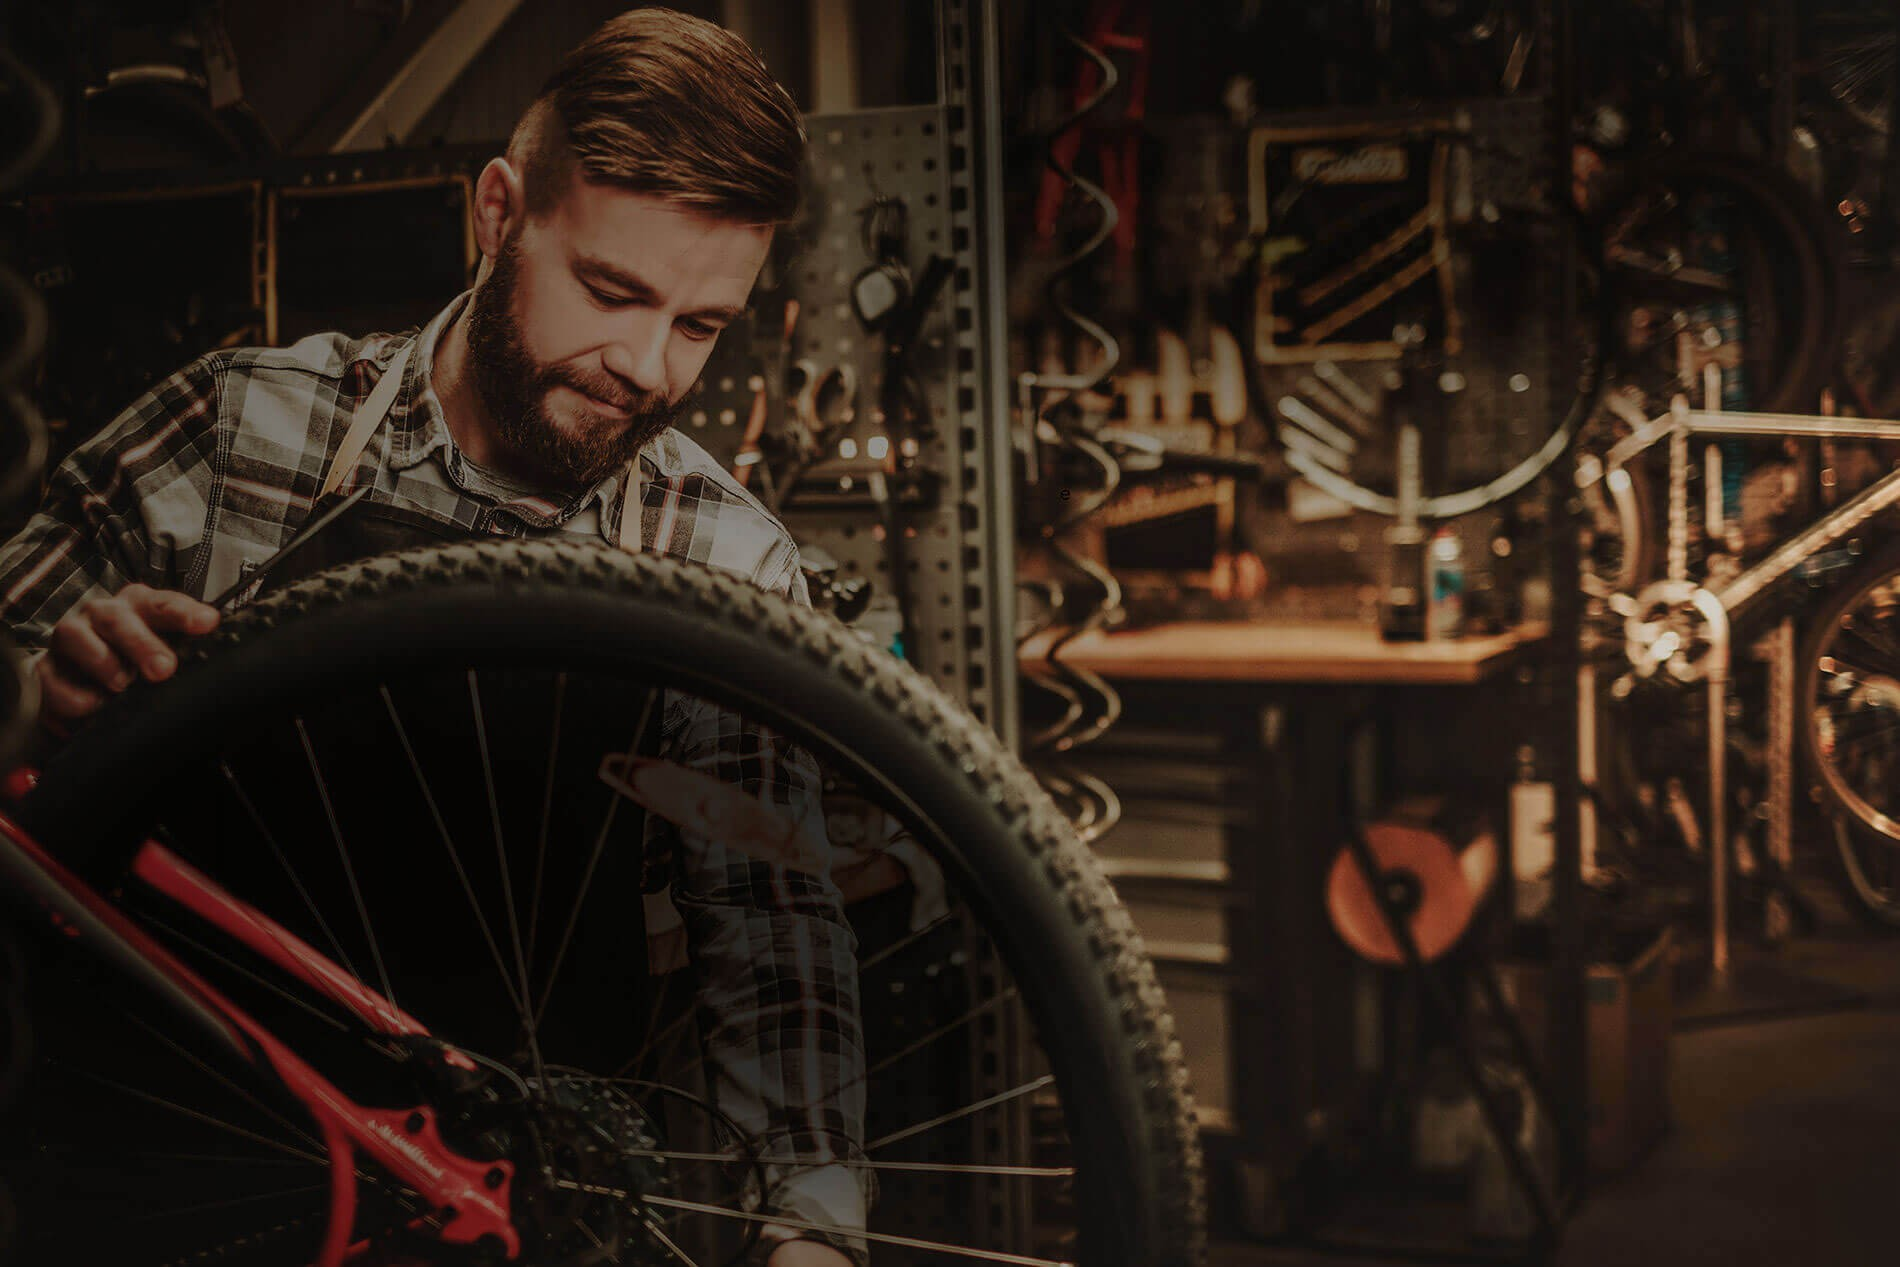 THE IDEAL TOOL TO PREPARE AND REPAIR YOUR BIKES